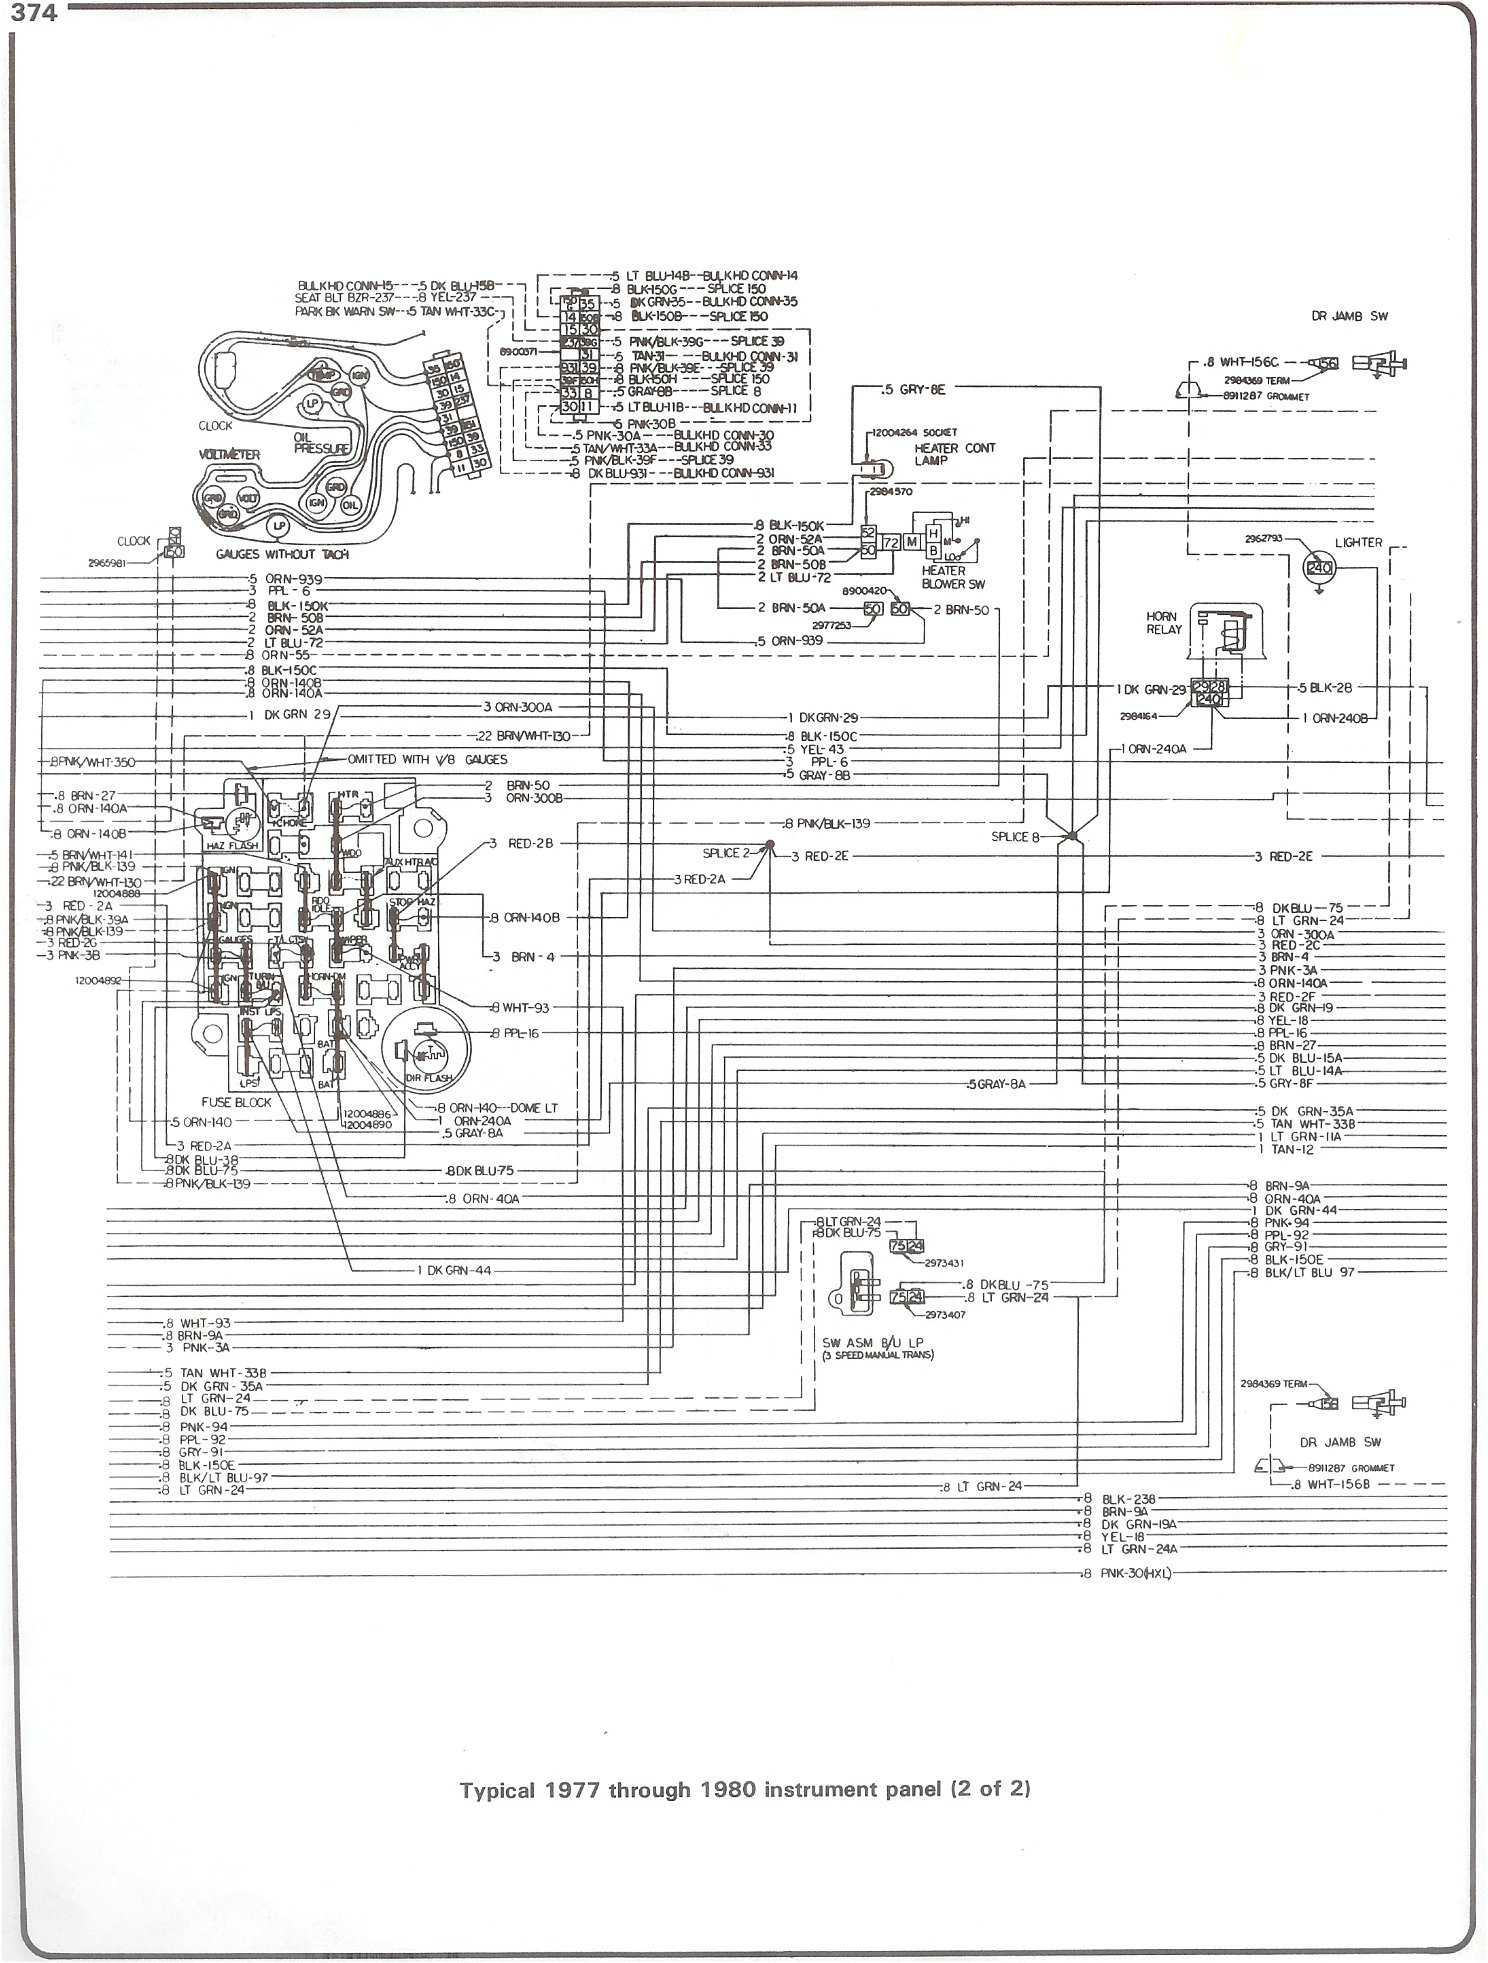 1984 k10 wiring diagram schematics wiring diagrams u2022 rh orwellvets co